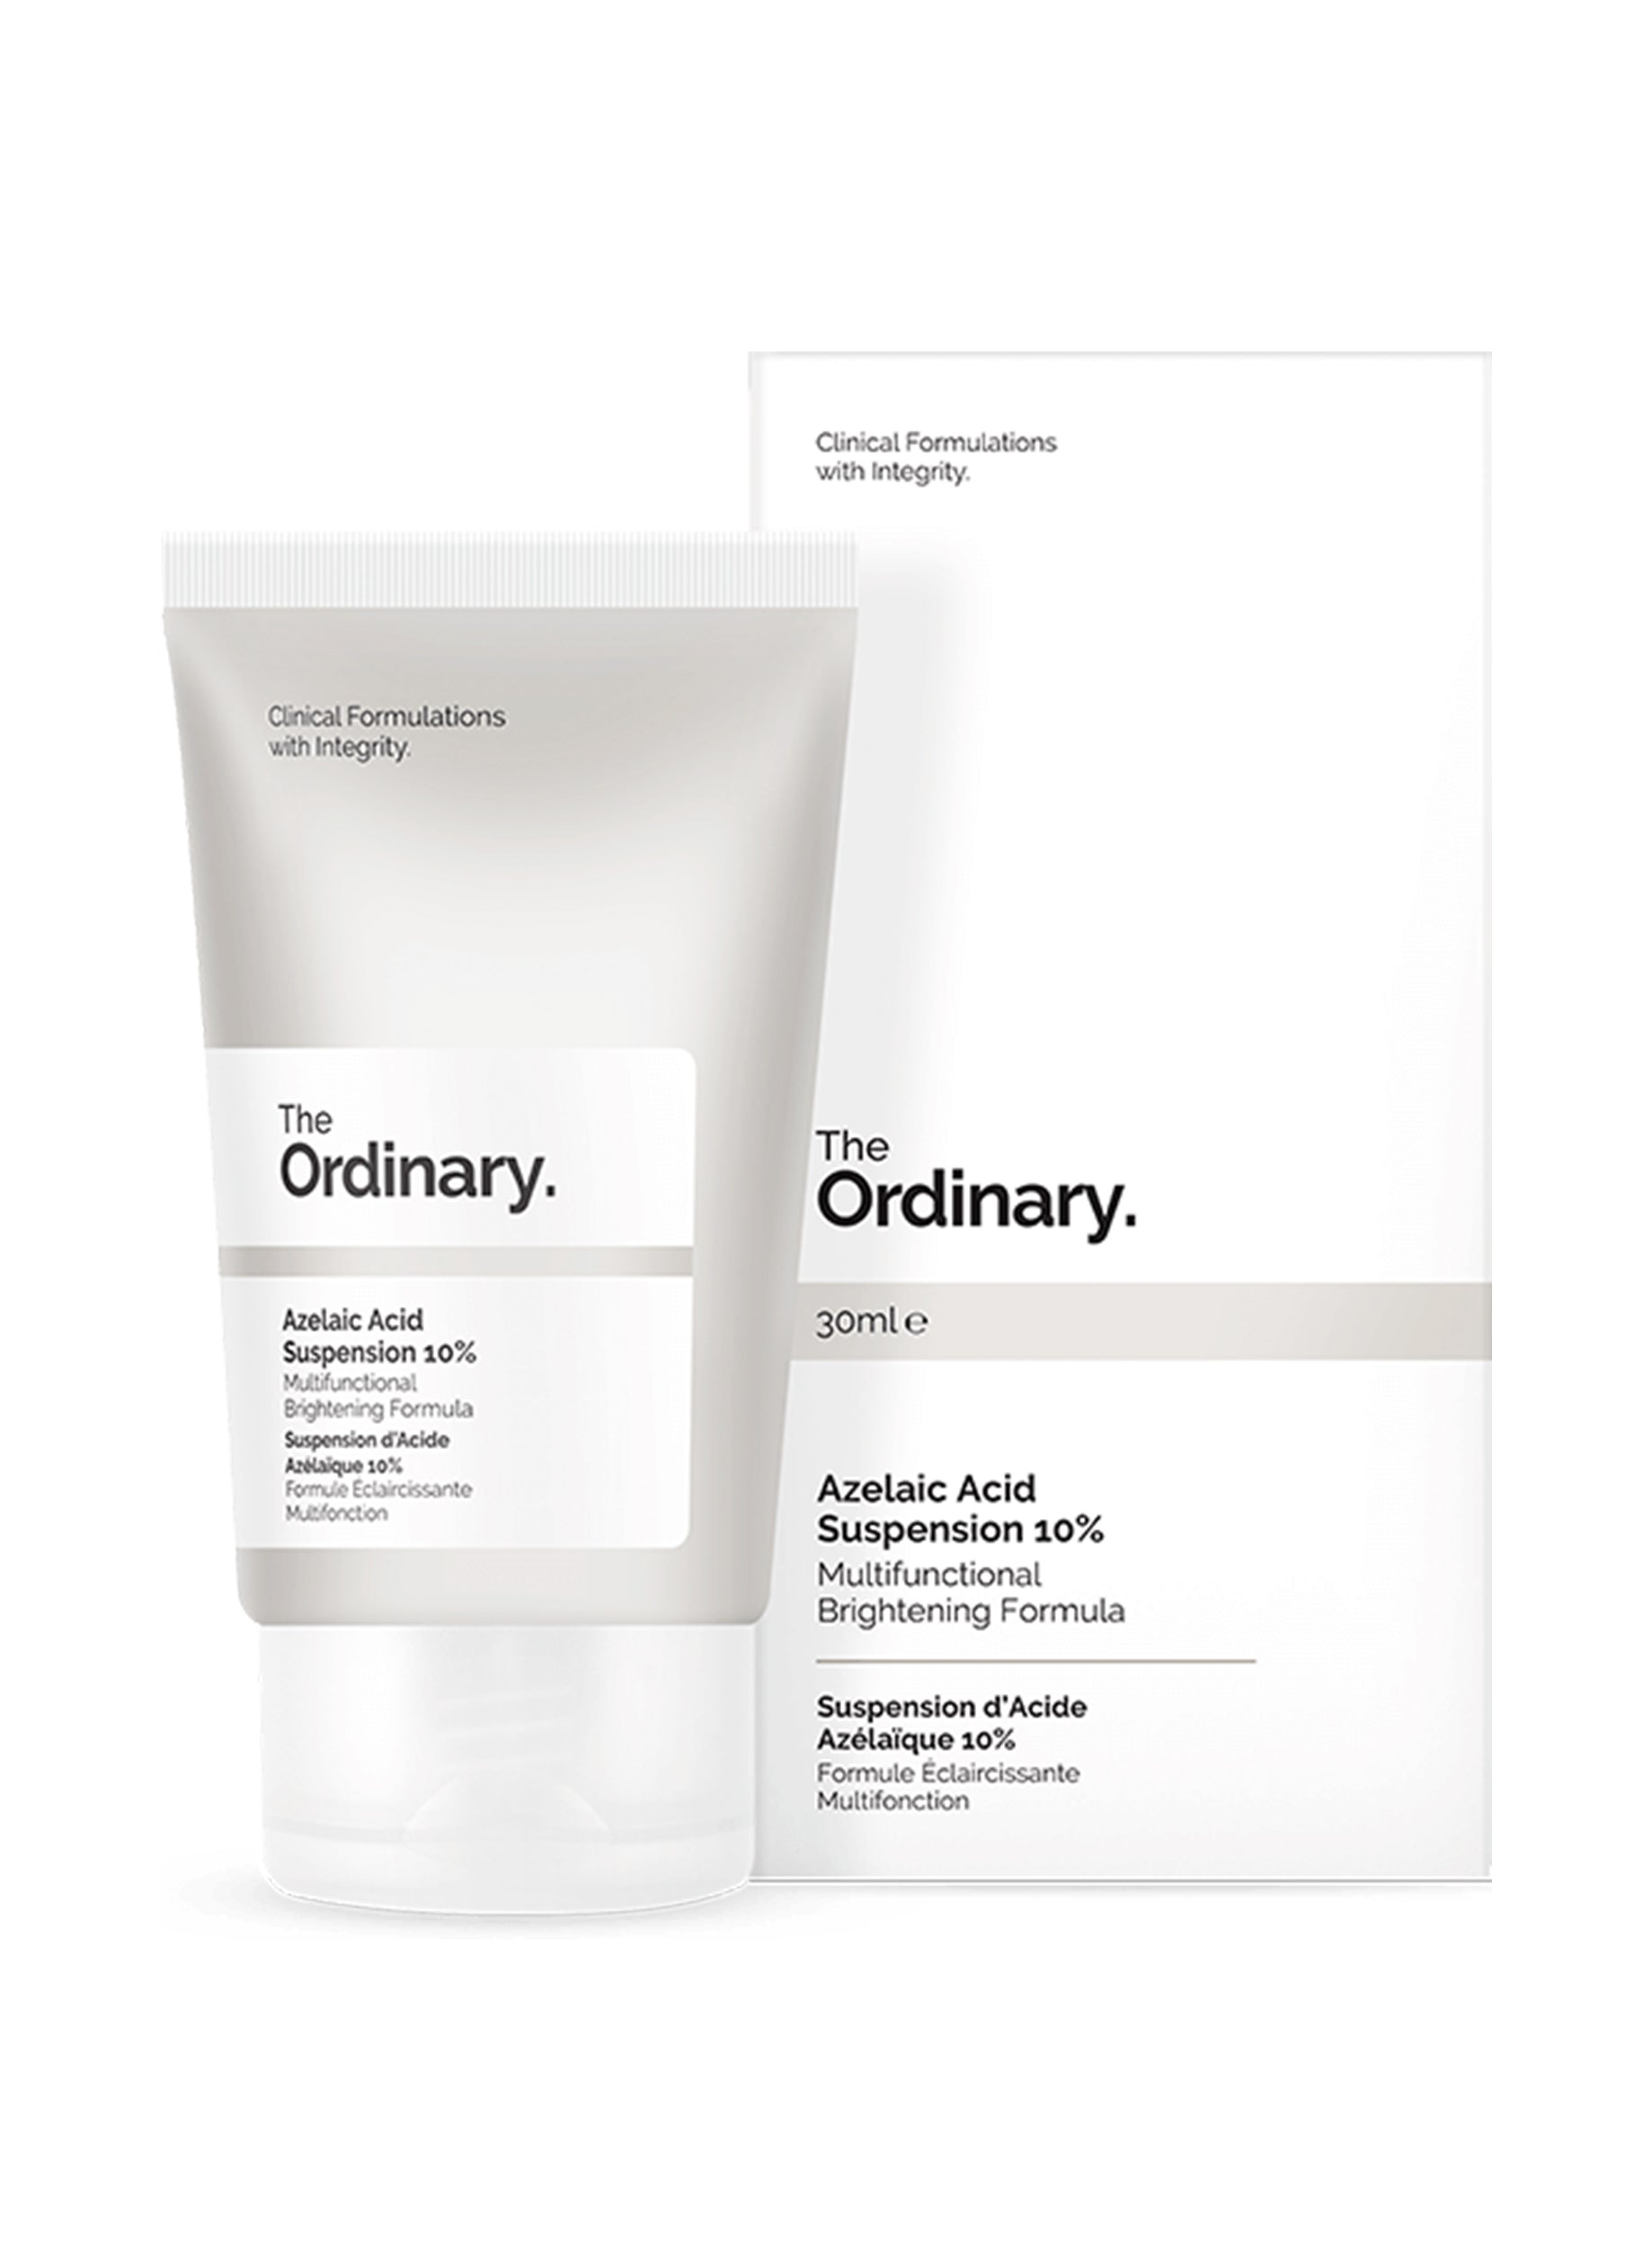 The Ordinary Suspenzija azelaične kisline 10% 30ml